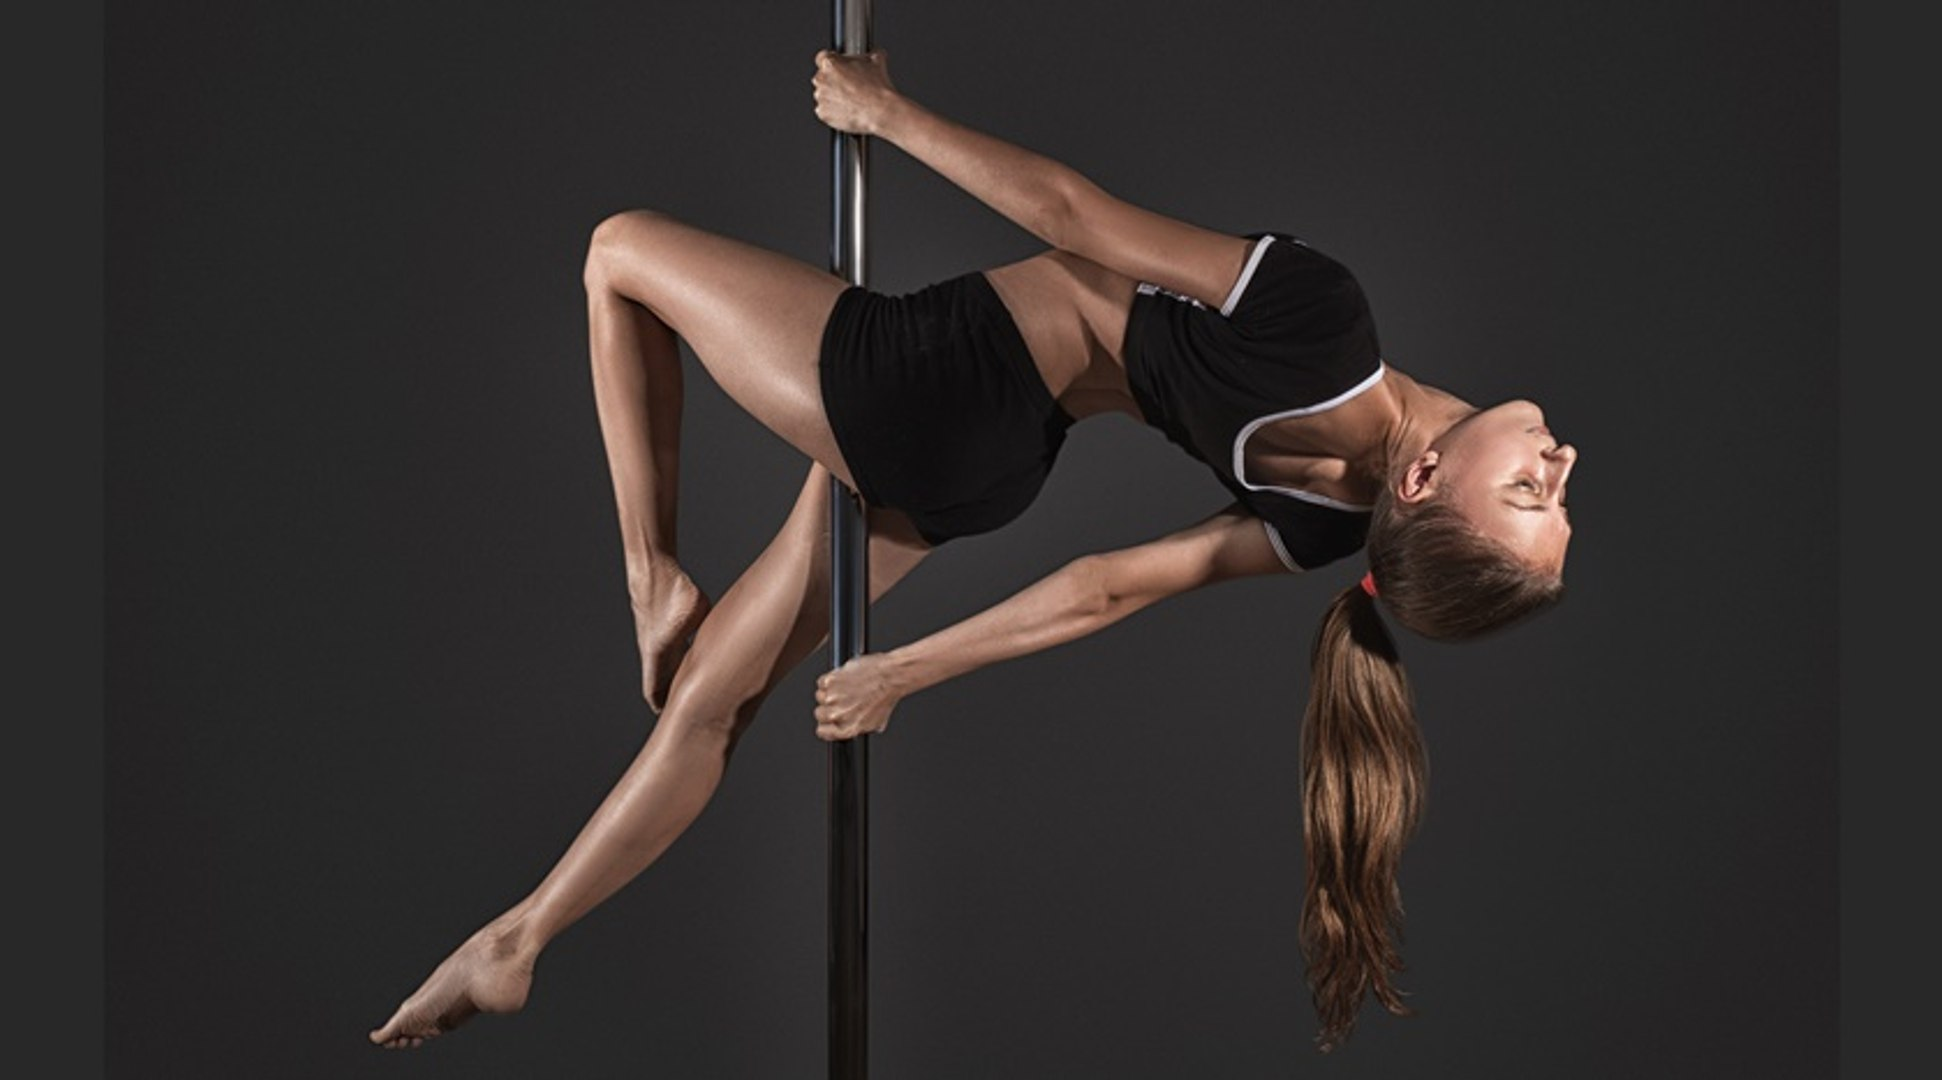 Best Pole Dance - Exotic Pole Dance